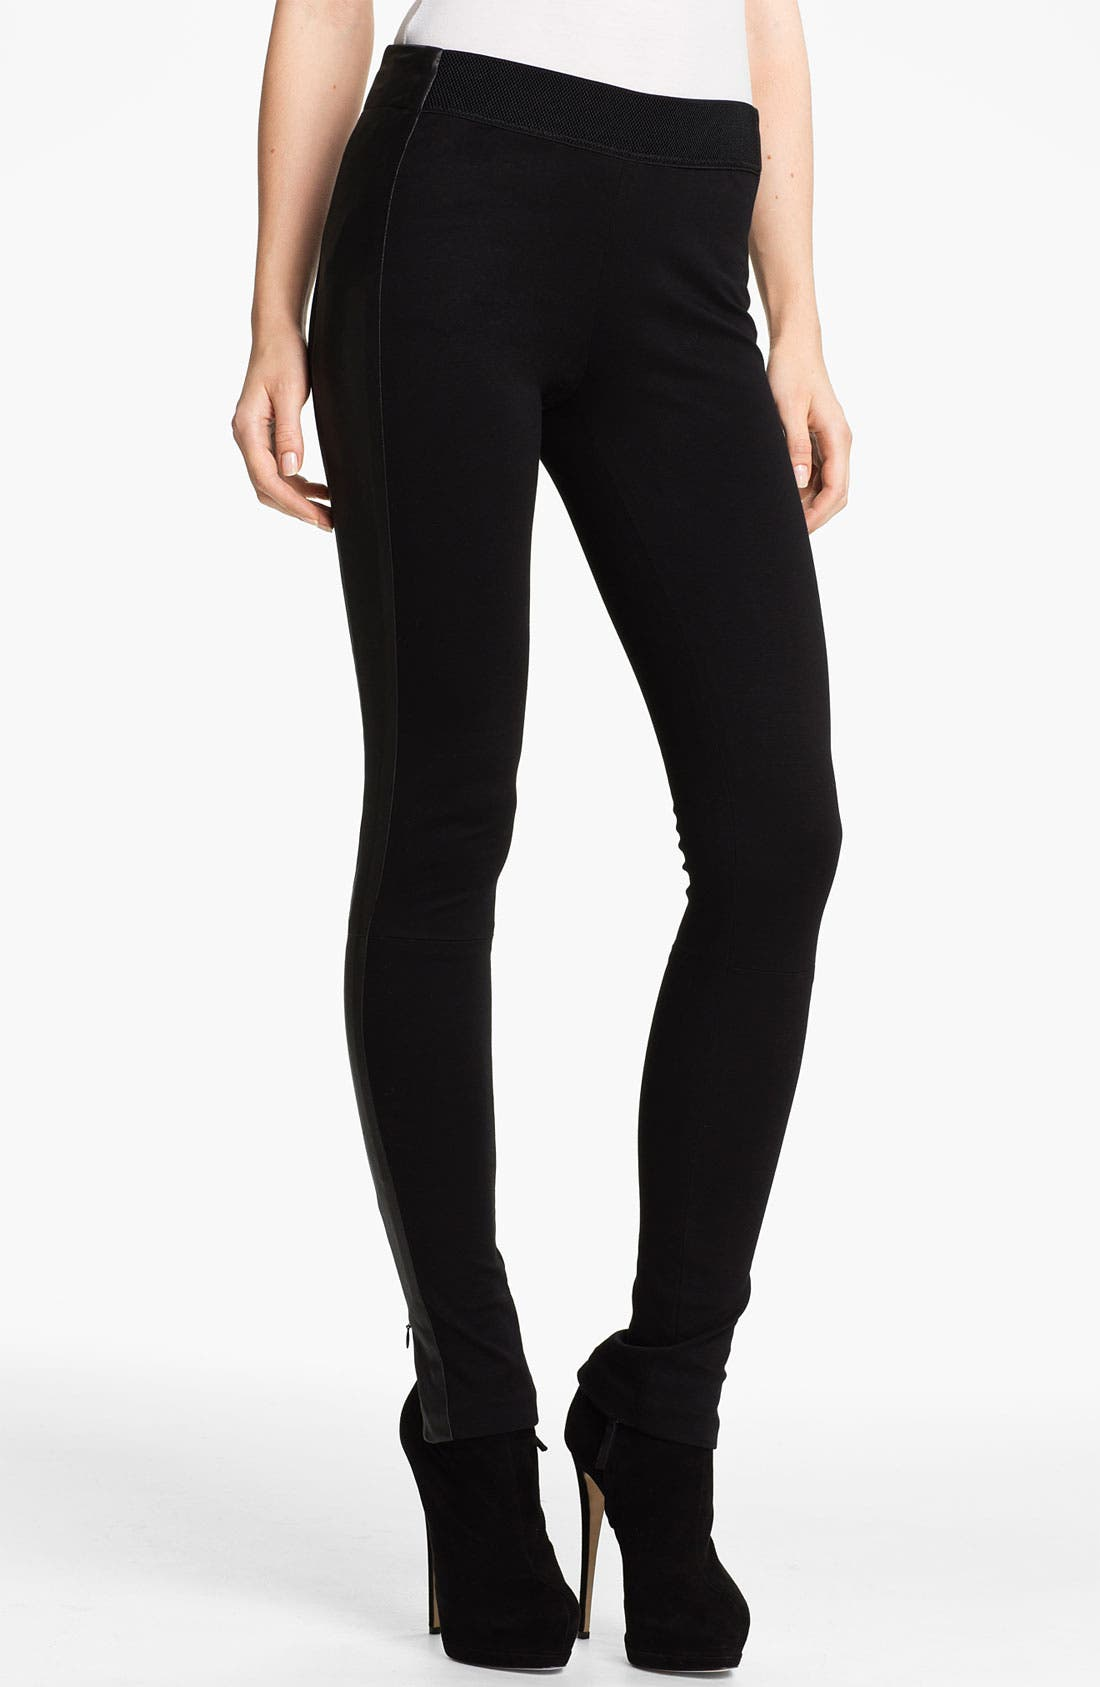 Alternate Image 1 Selected - rag & bone 'Renard' Leather Tuxedo Stripe Leggings